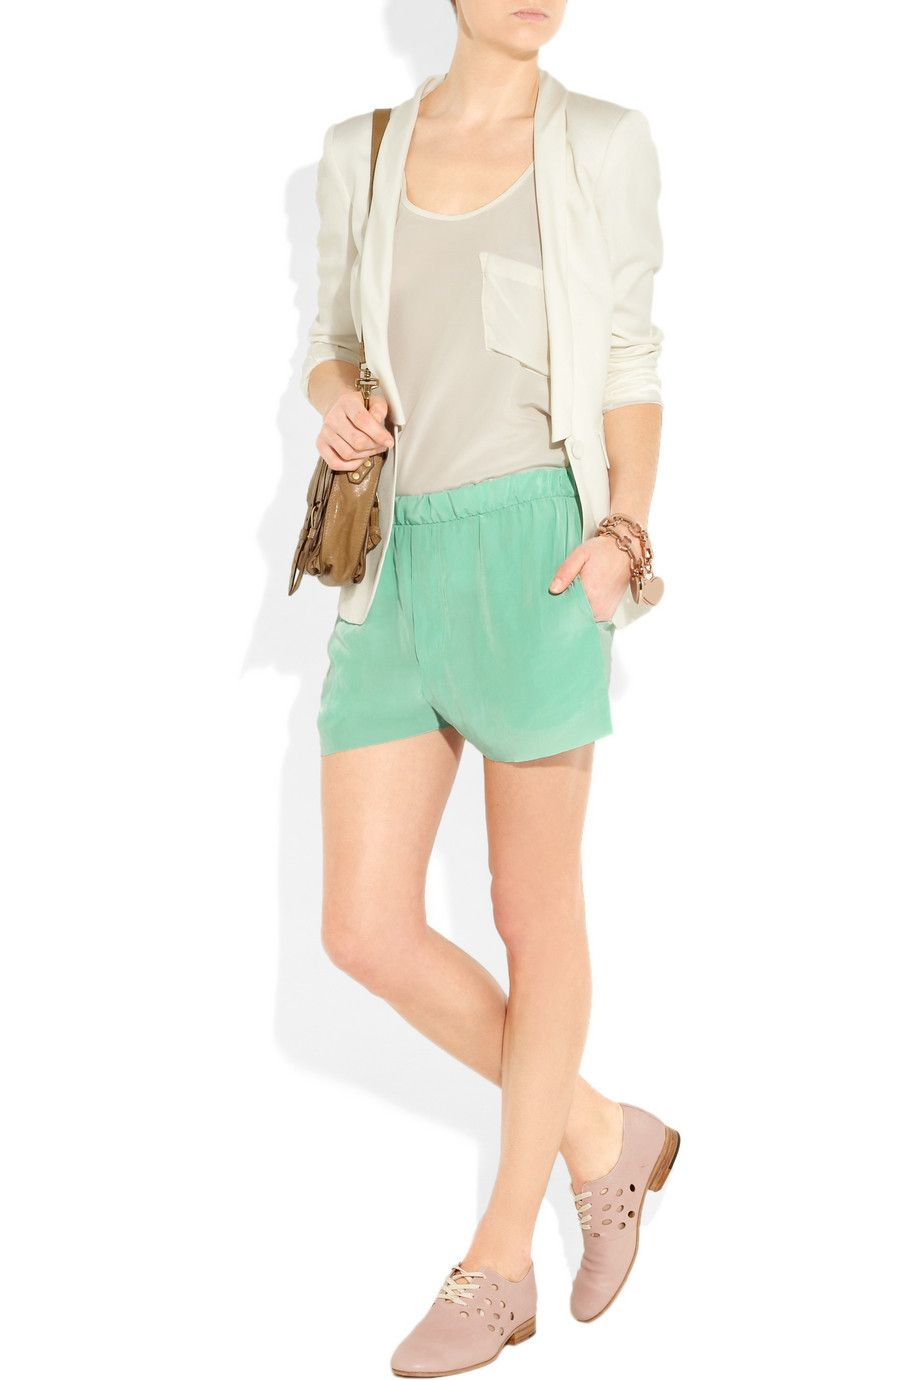 Acne Bacall crinkled-crepe shorts